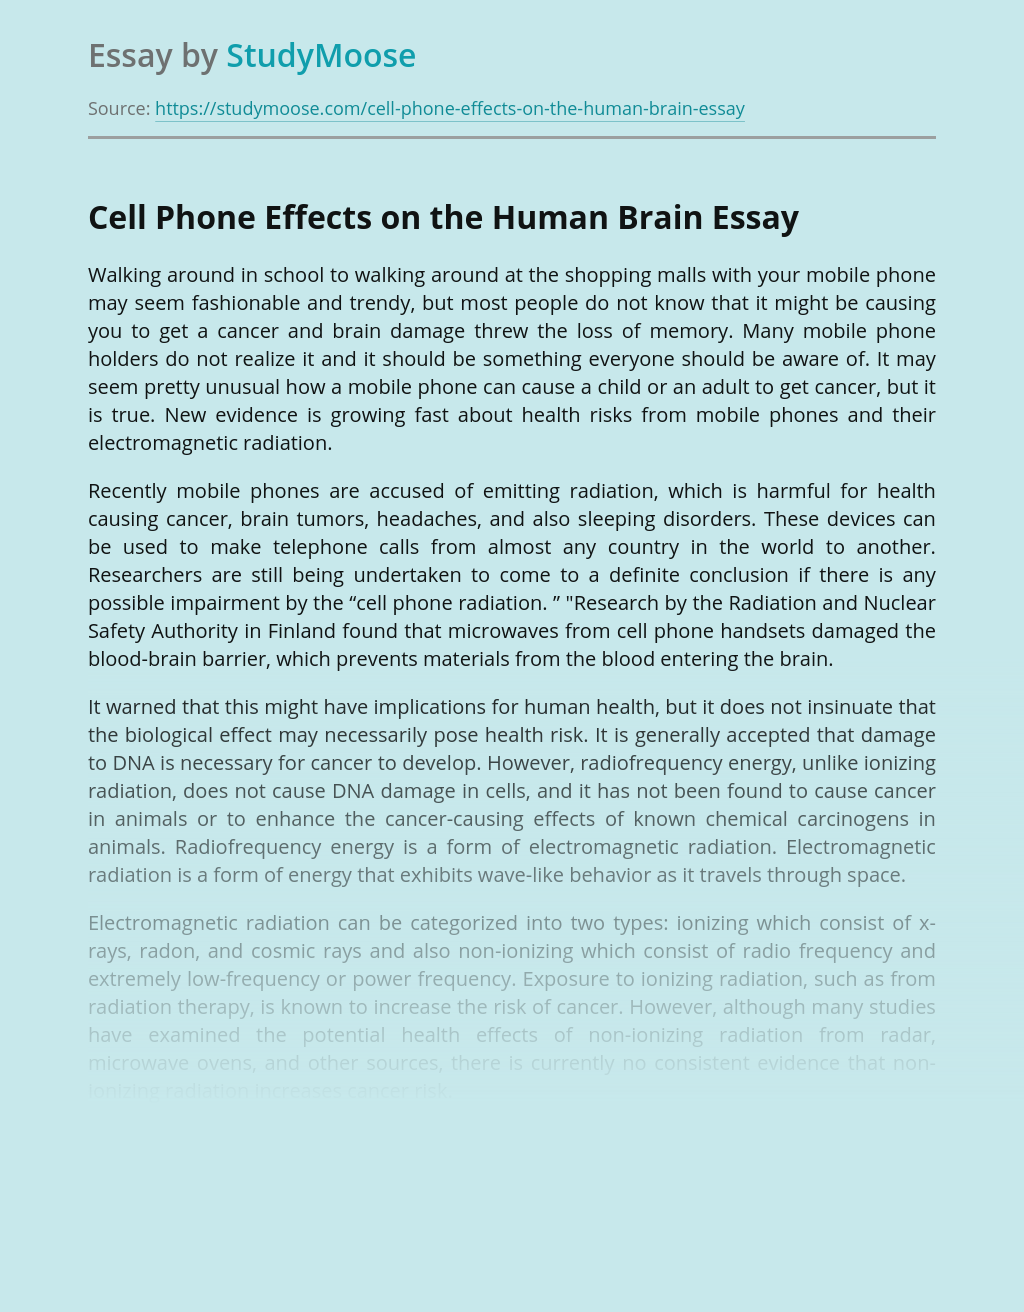 Cell Phone Effects on the Human Brain